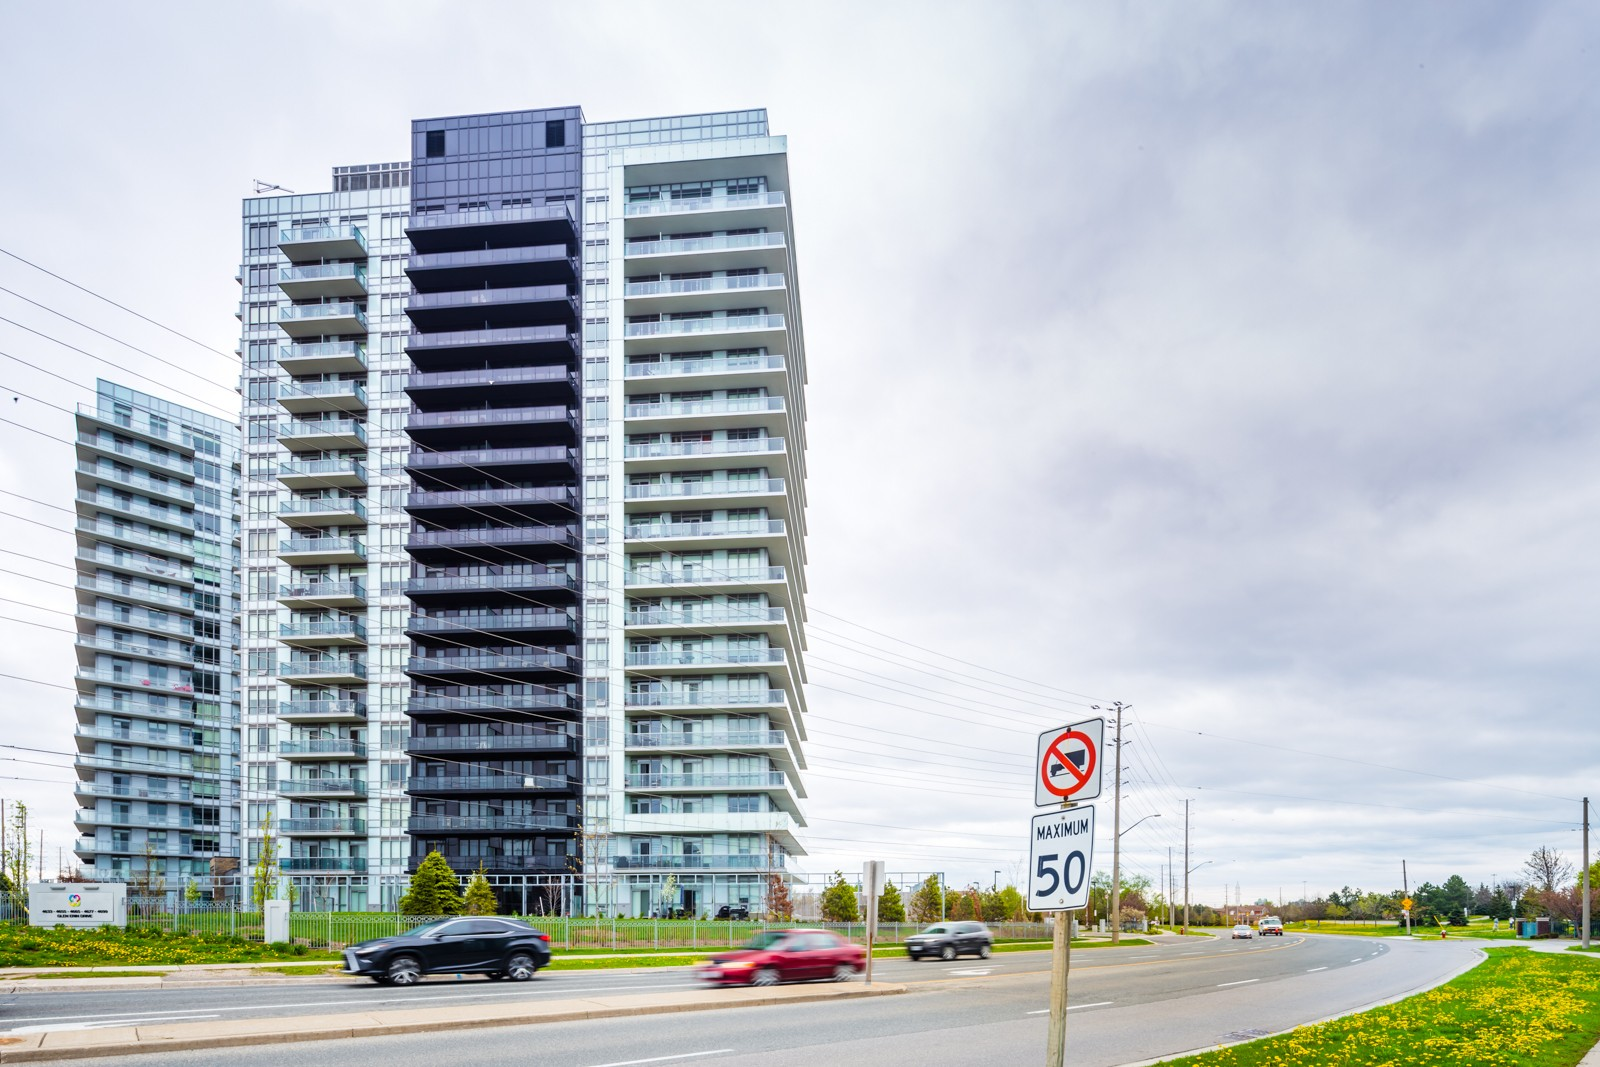 Downtown Erin Mills 2 at 4655 Glen Erin Dr, Mississauga 1